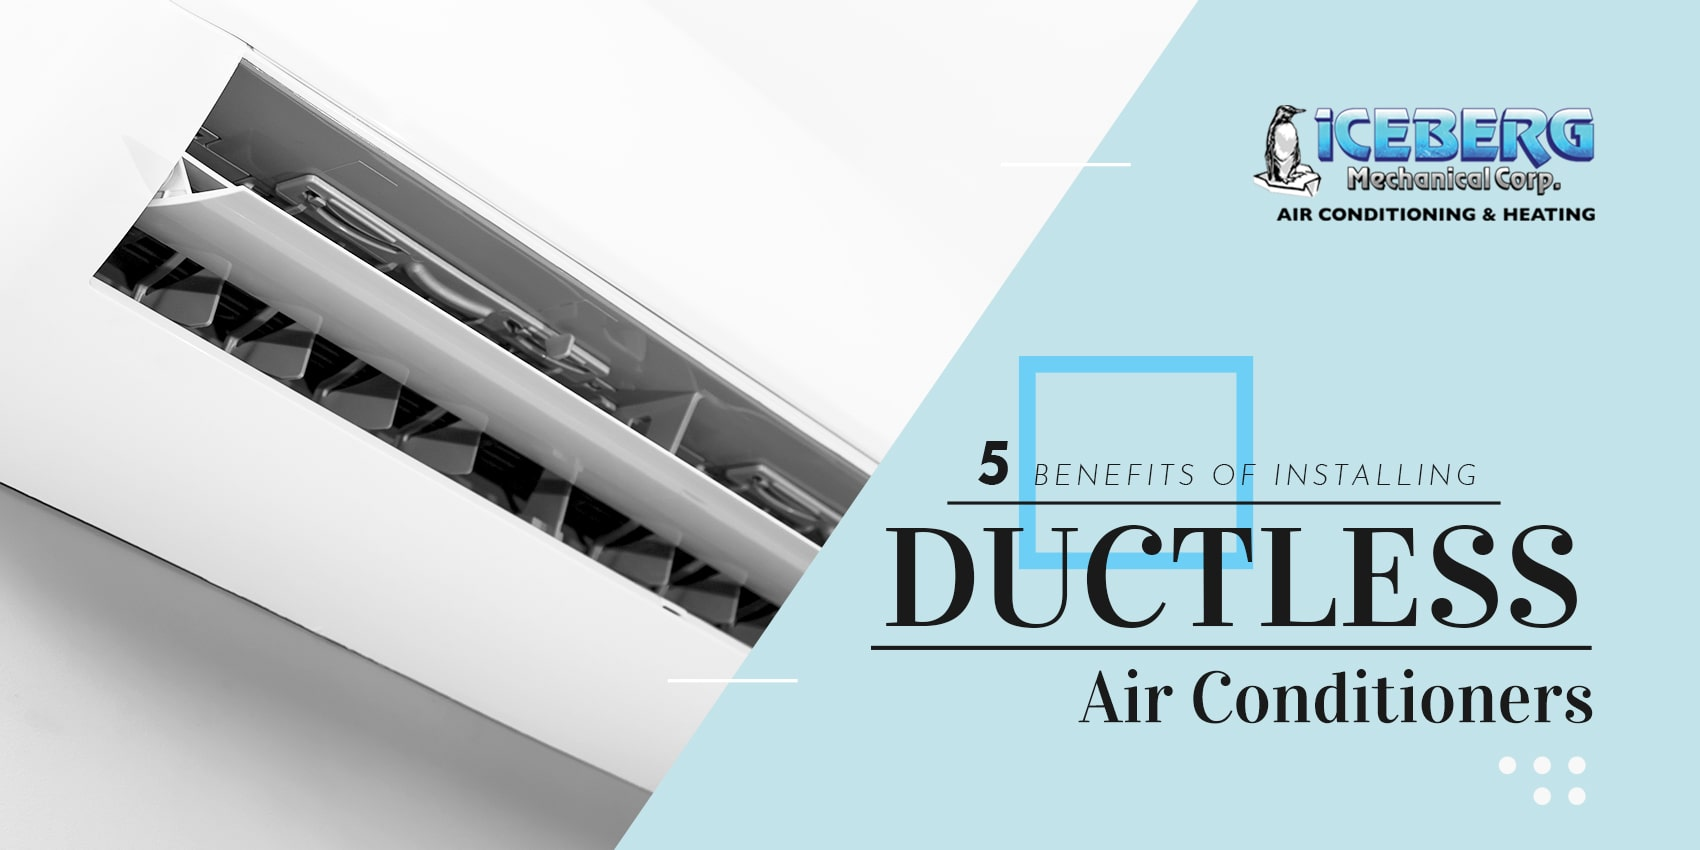 5 Benefits Of Installing Ductless Air Conditioners